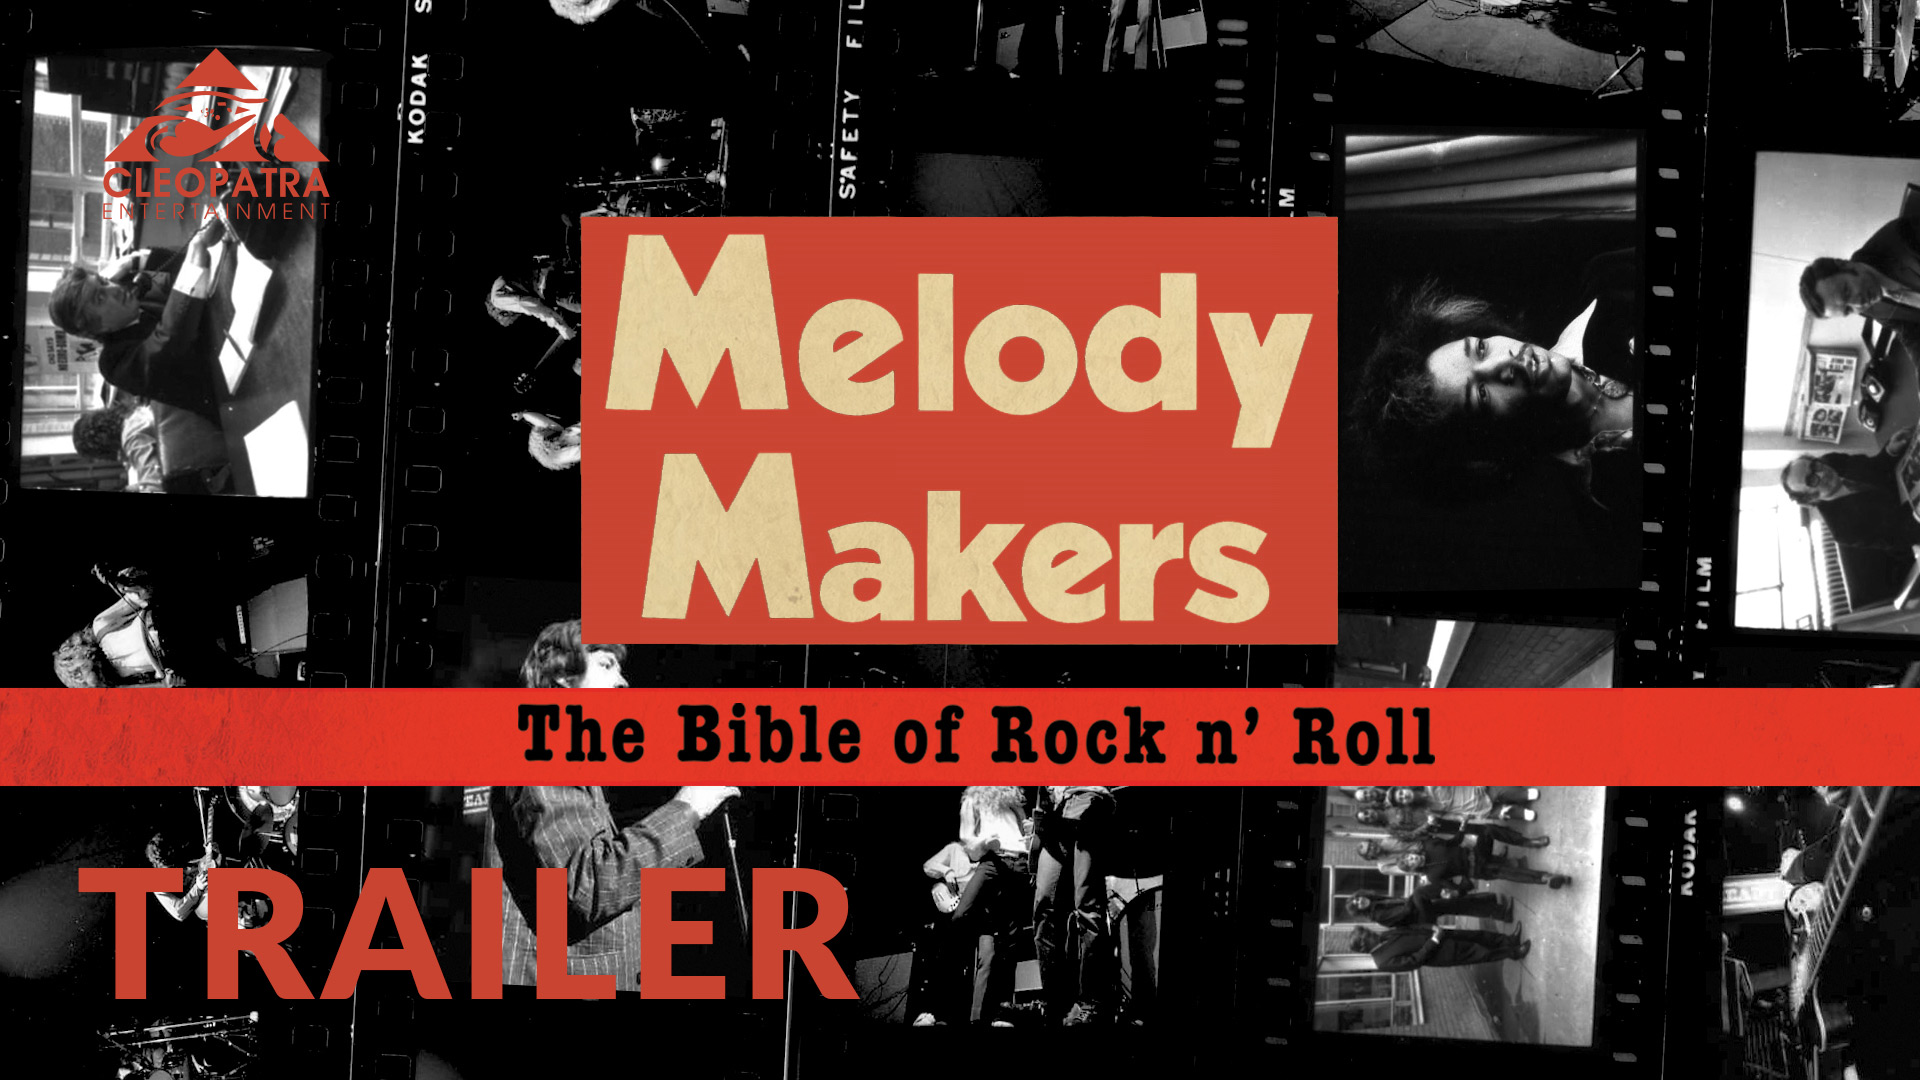 Melody Makers - The Bible of Rock n' Roll